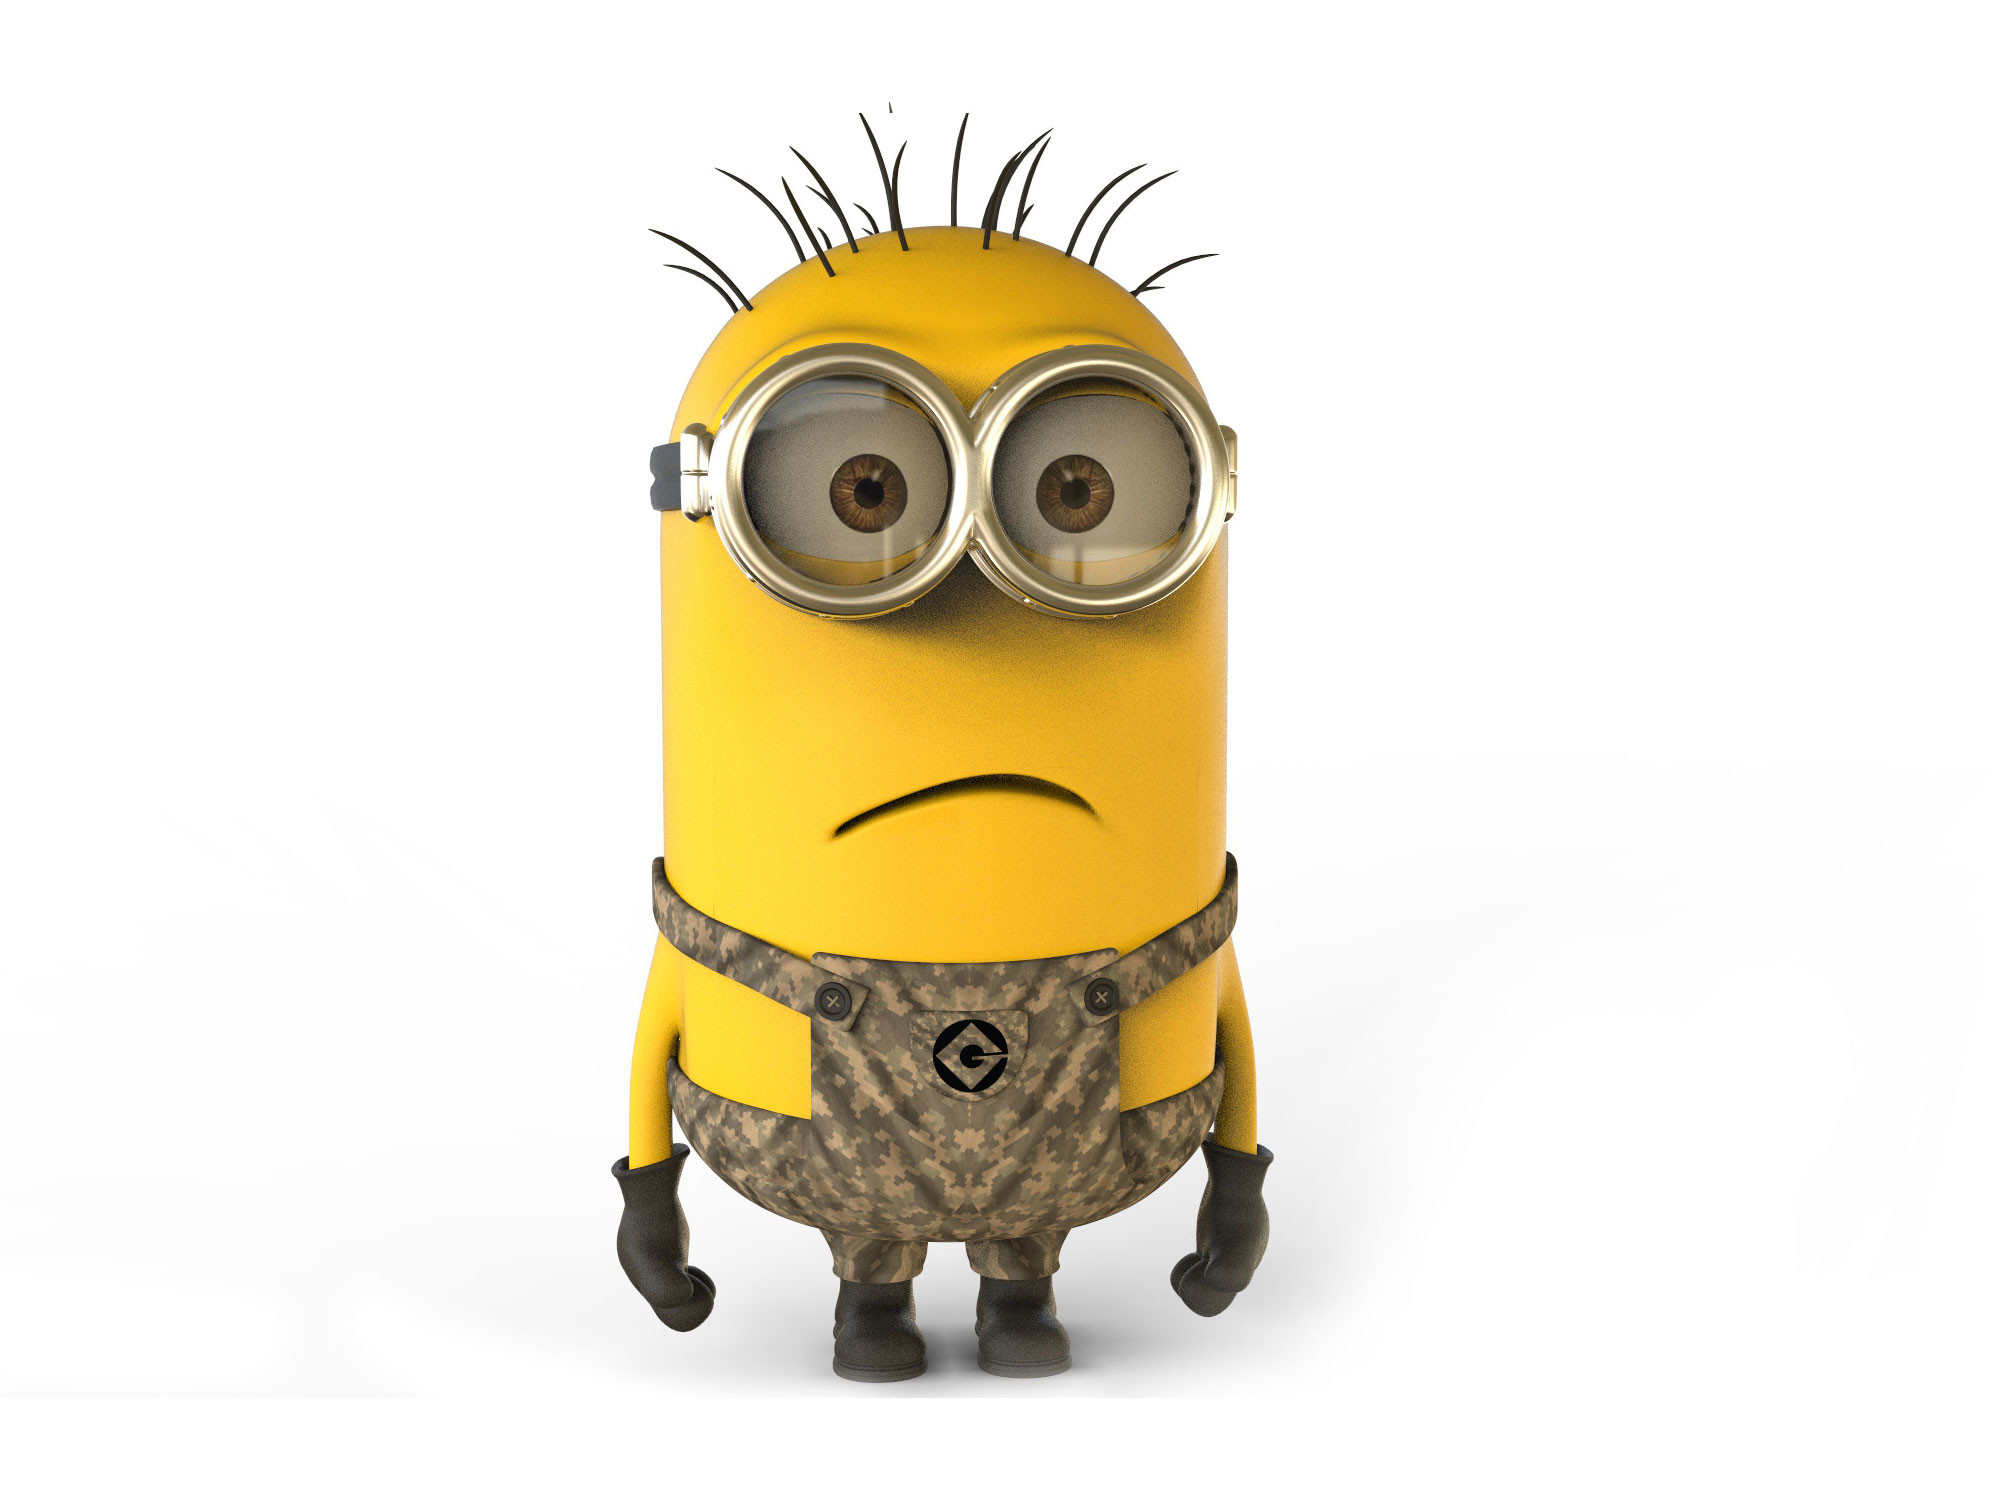 Call of Duty Minion Wallpapers & Backgrounds